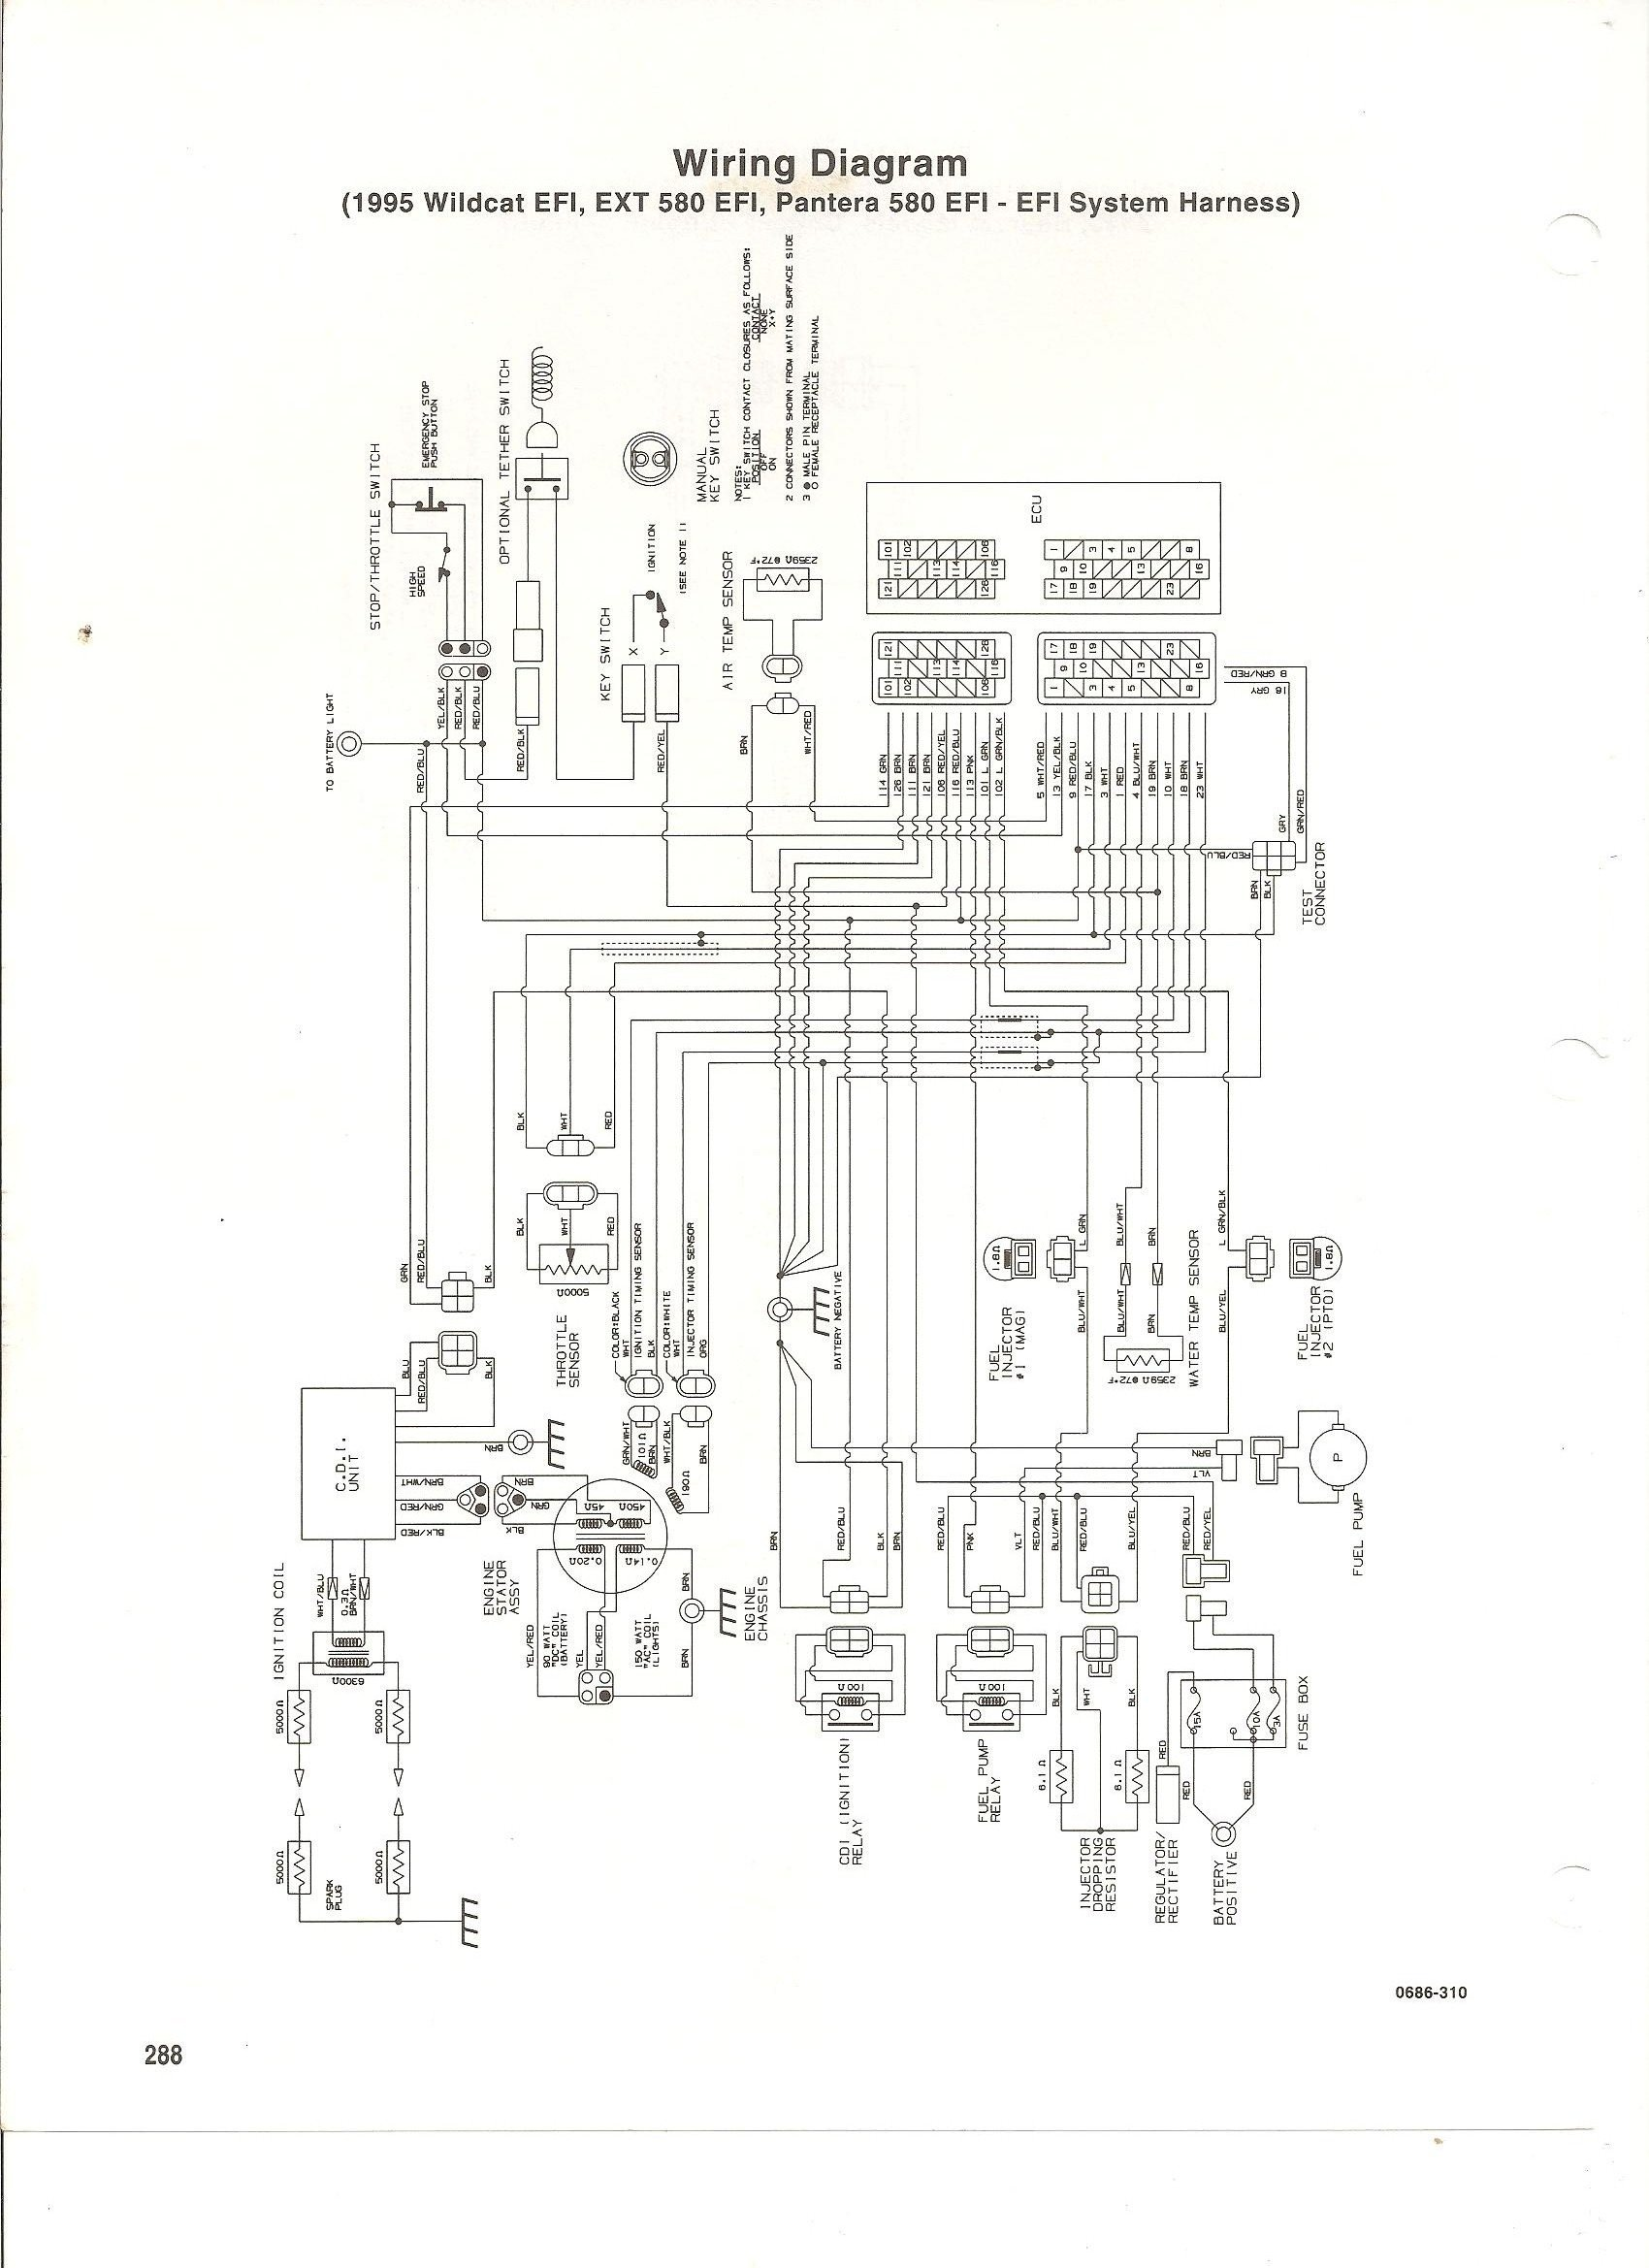 Honda Gx660 Wiring Schematic, Honda, Free Engine Image For